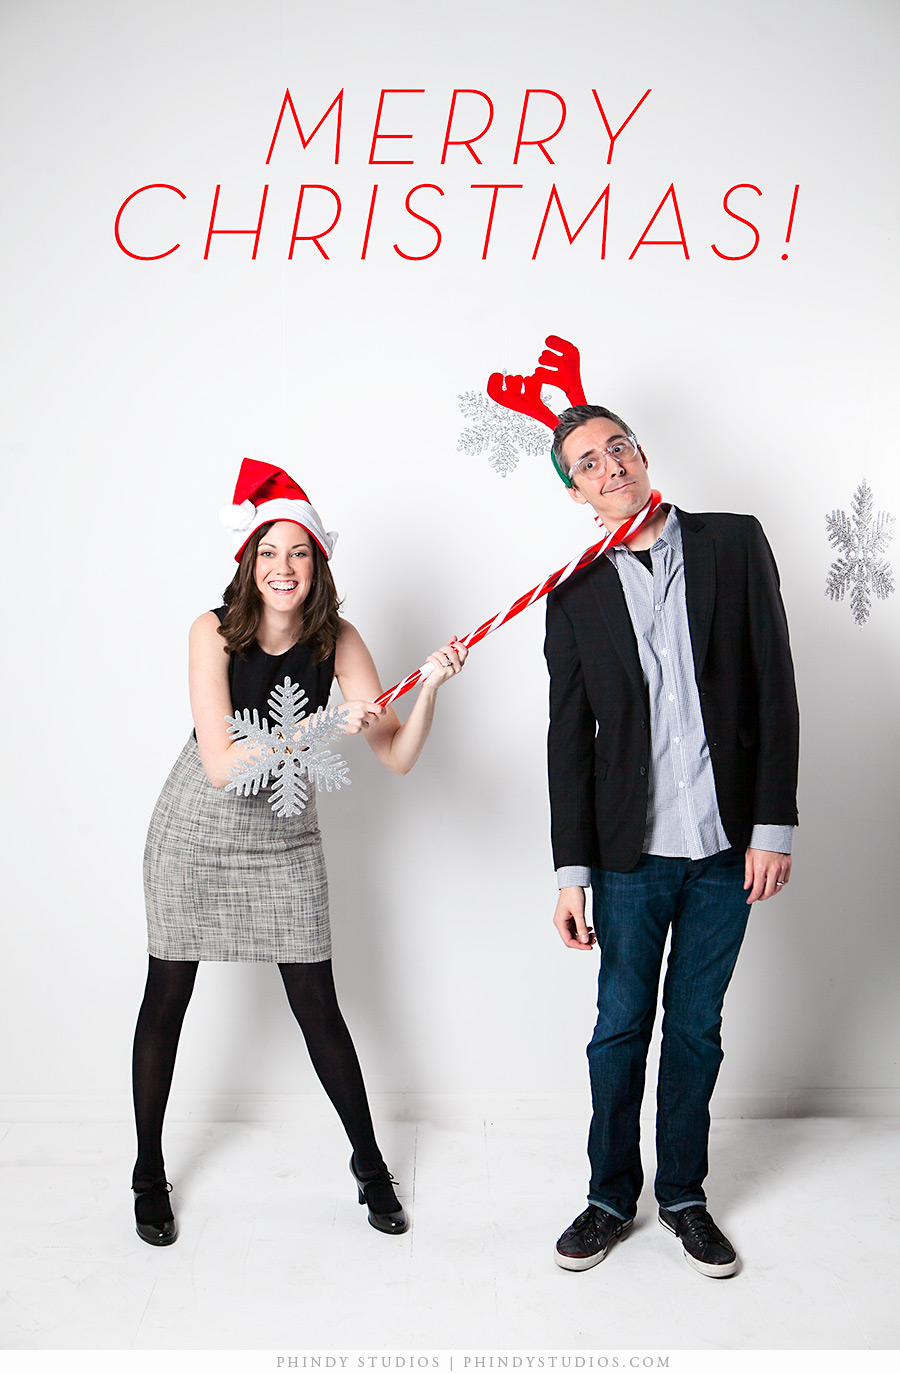 Merry Christmas from Phindy Studios!